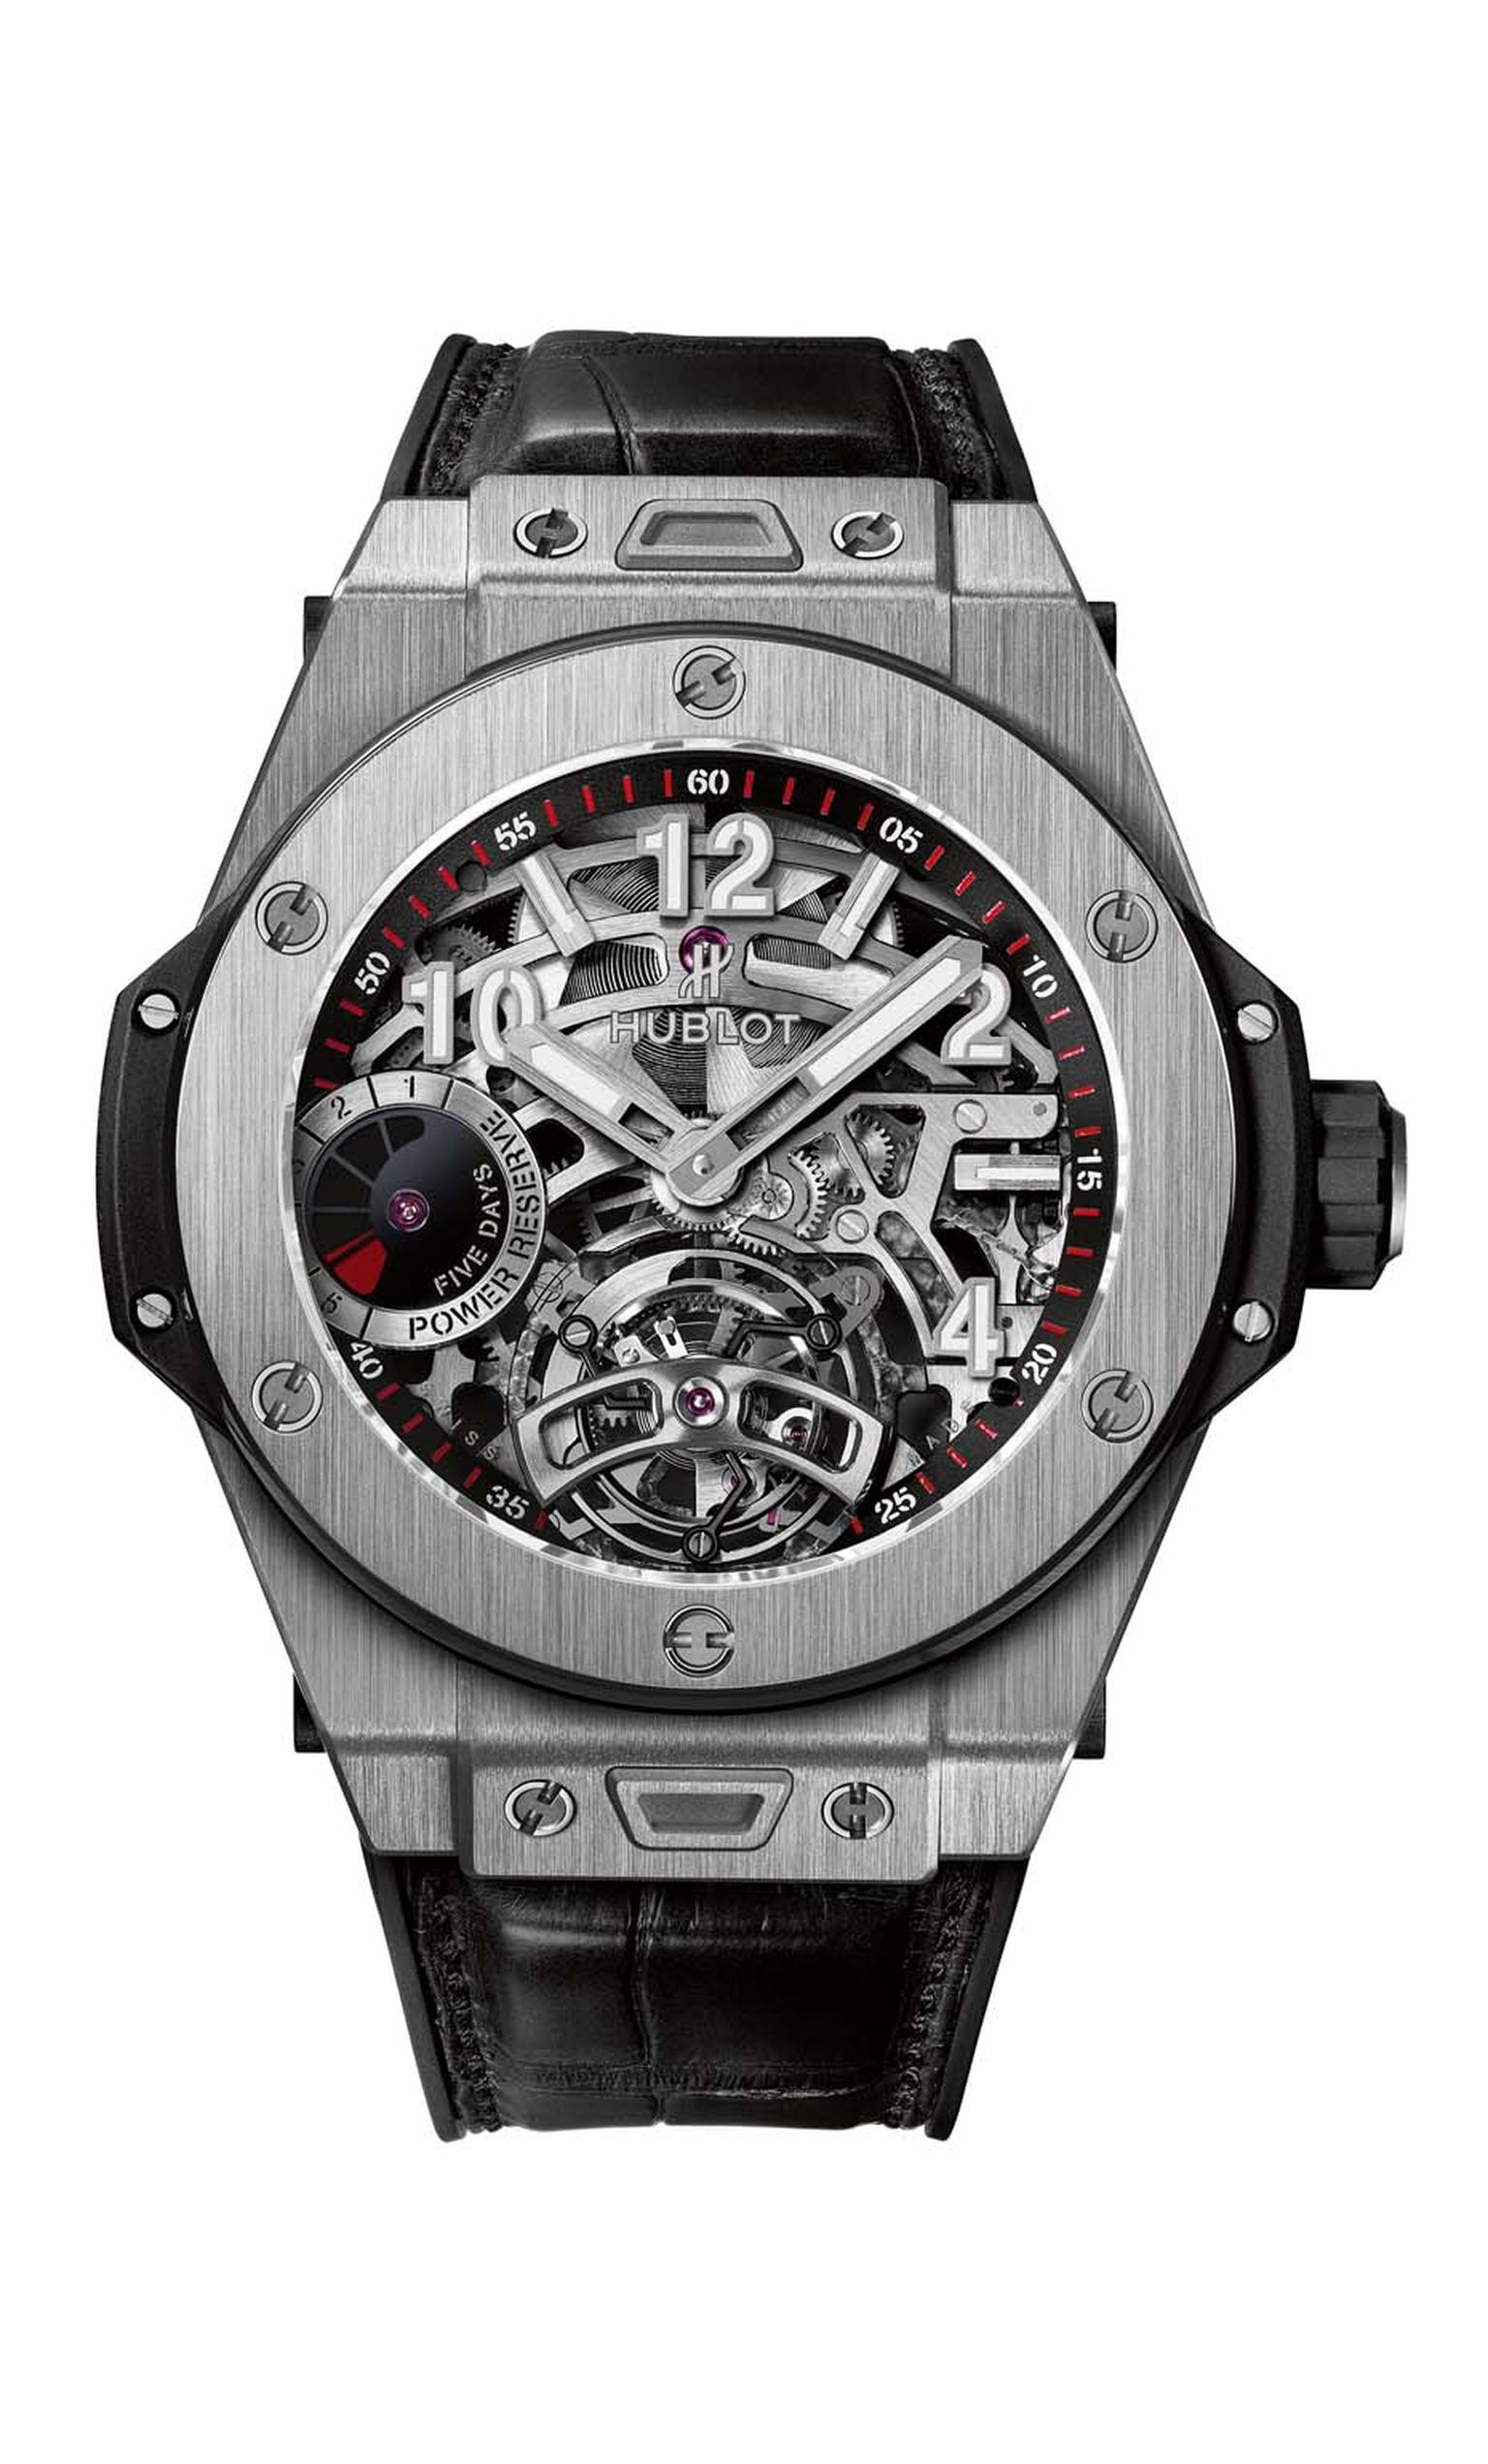 Hublot Big Bang Tourbillon 5-day Power Reserve skeleton watch in titanium features a one-minute tourbillon at 6 o'clock and a power reserve indicator at 9 o'clock. In addition to the complex skeletonisation of the movement, the numbers, indices and hands